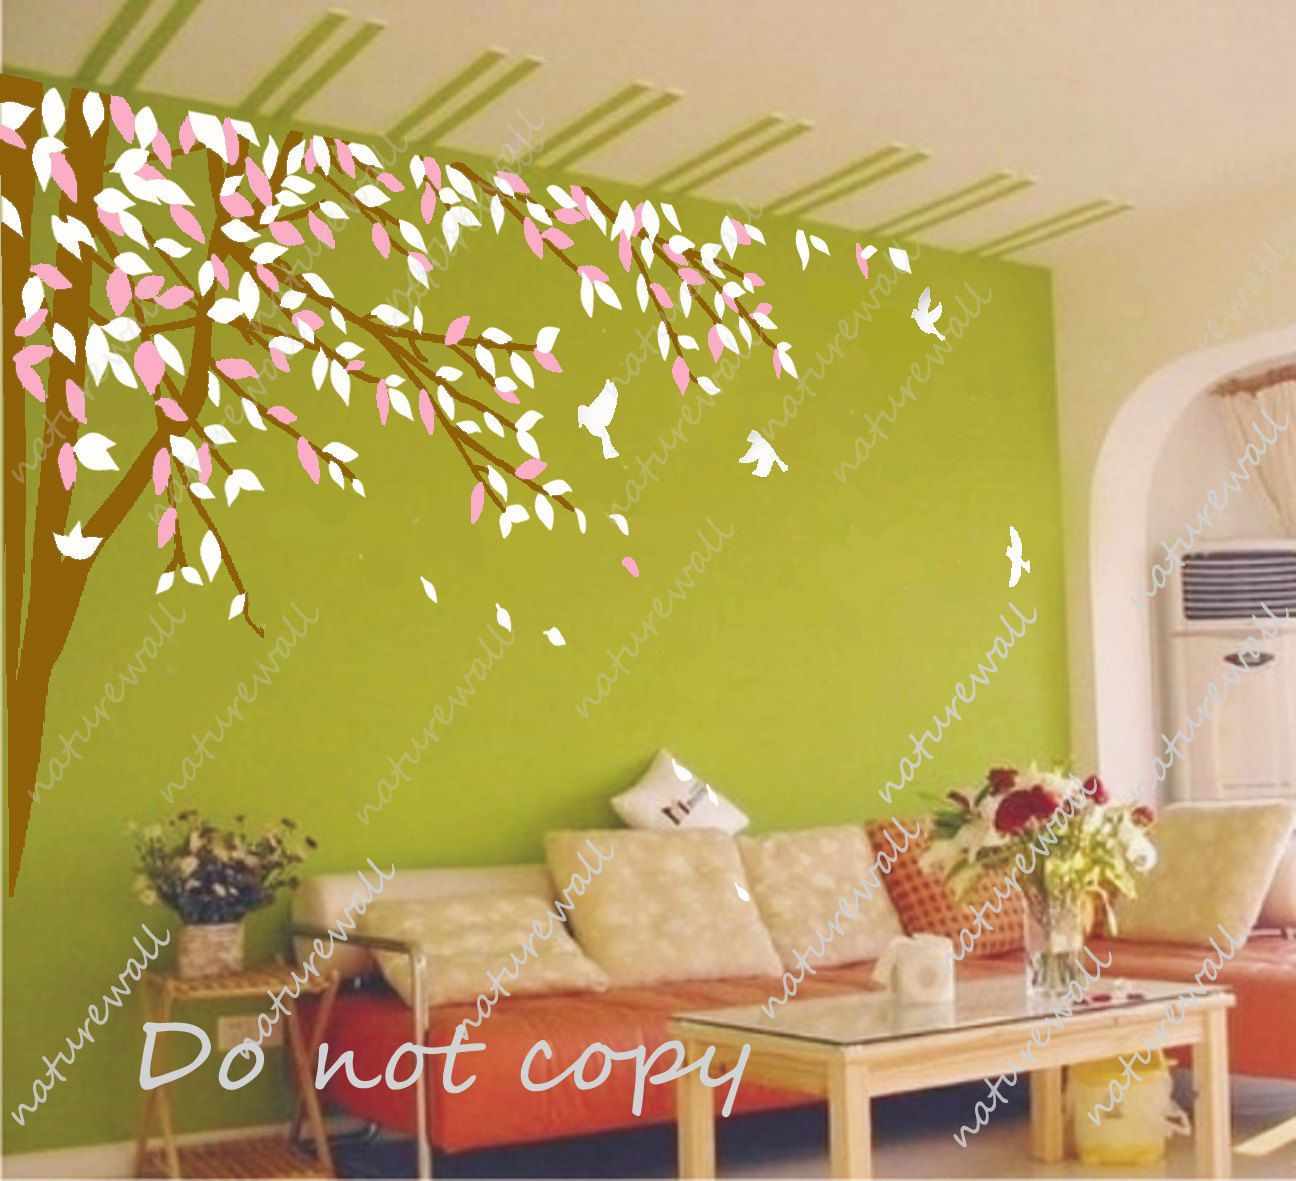 Tree wall decals Kids decals baby nursery room decor pink white ...